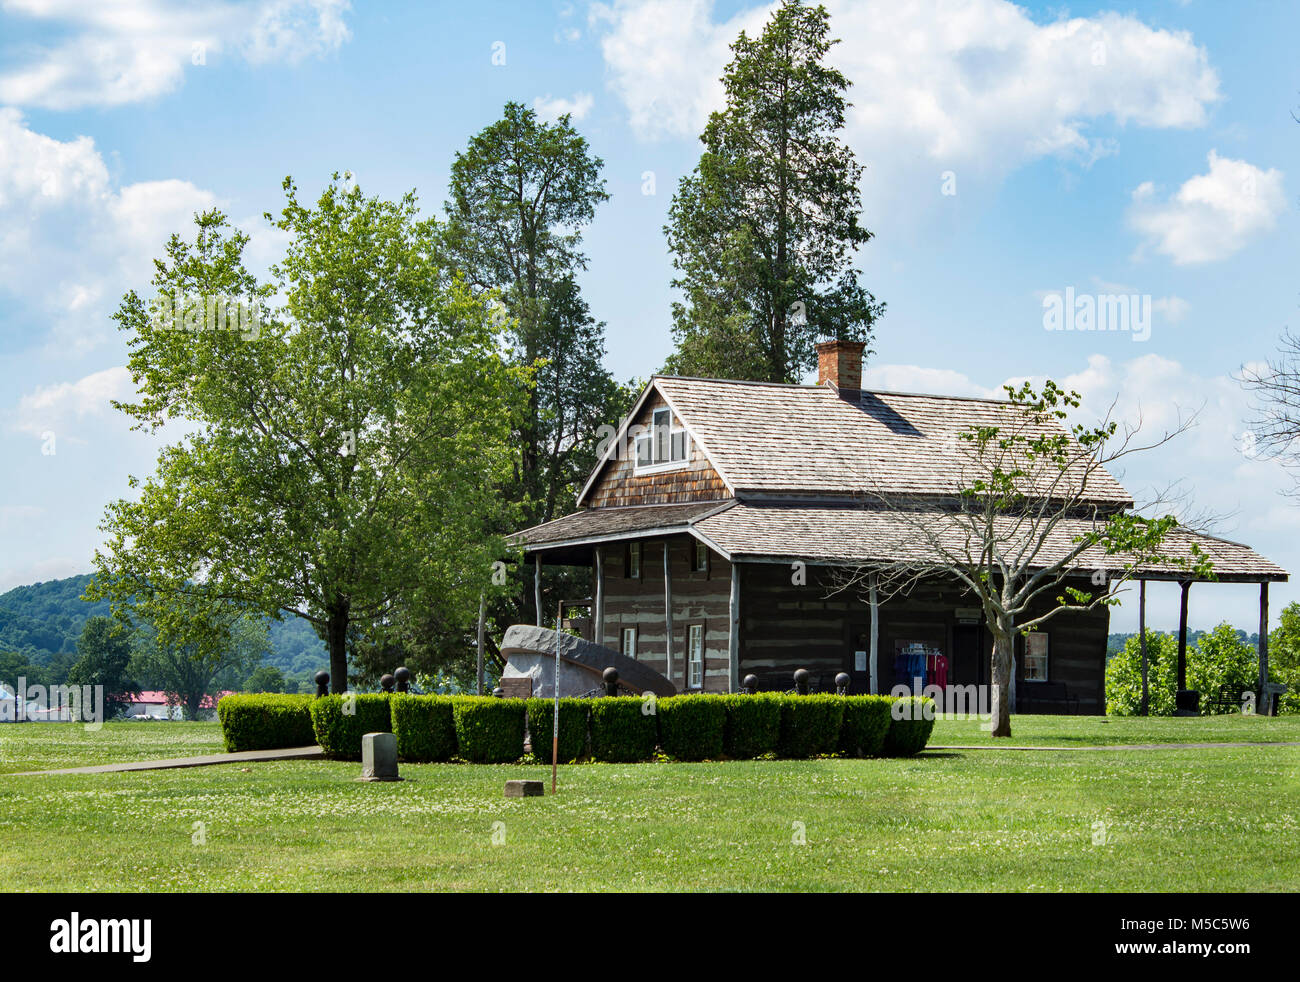 Tu Endie Wei State Park Wv Cabin Stock Photo 175445010 Alamy